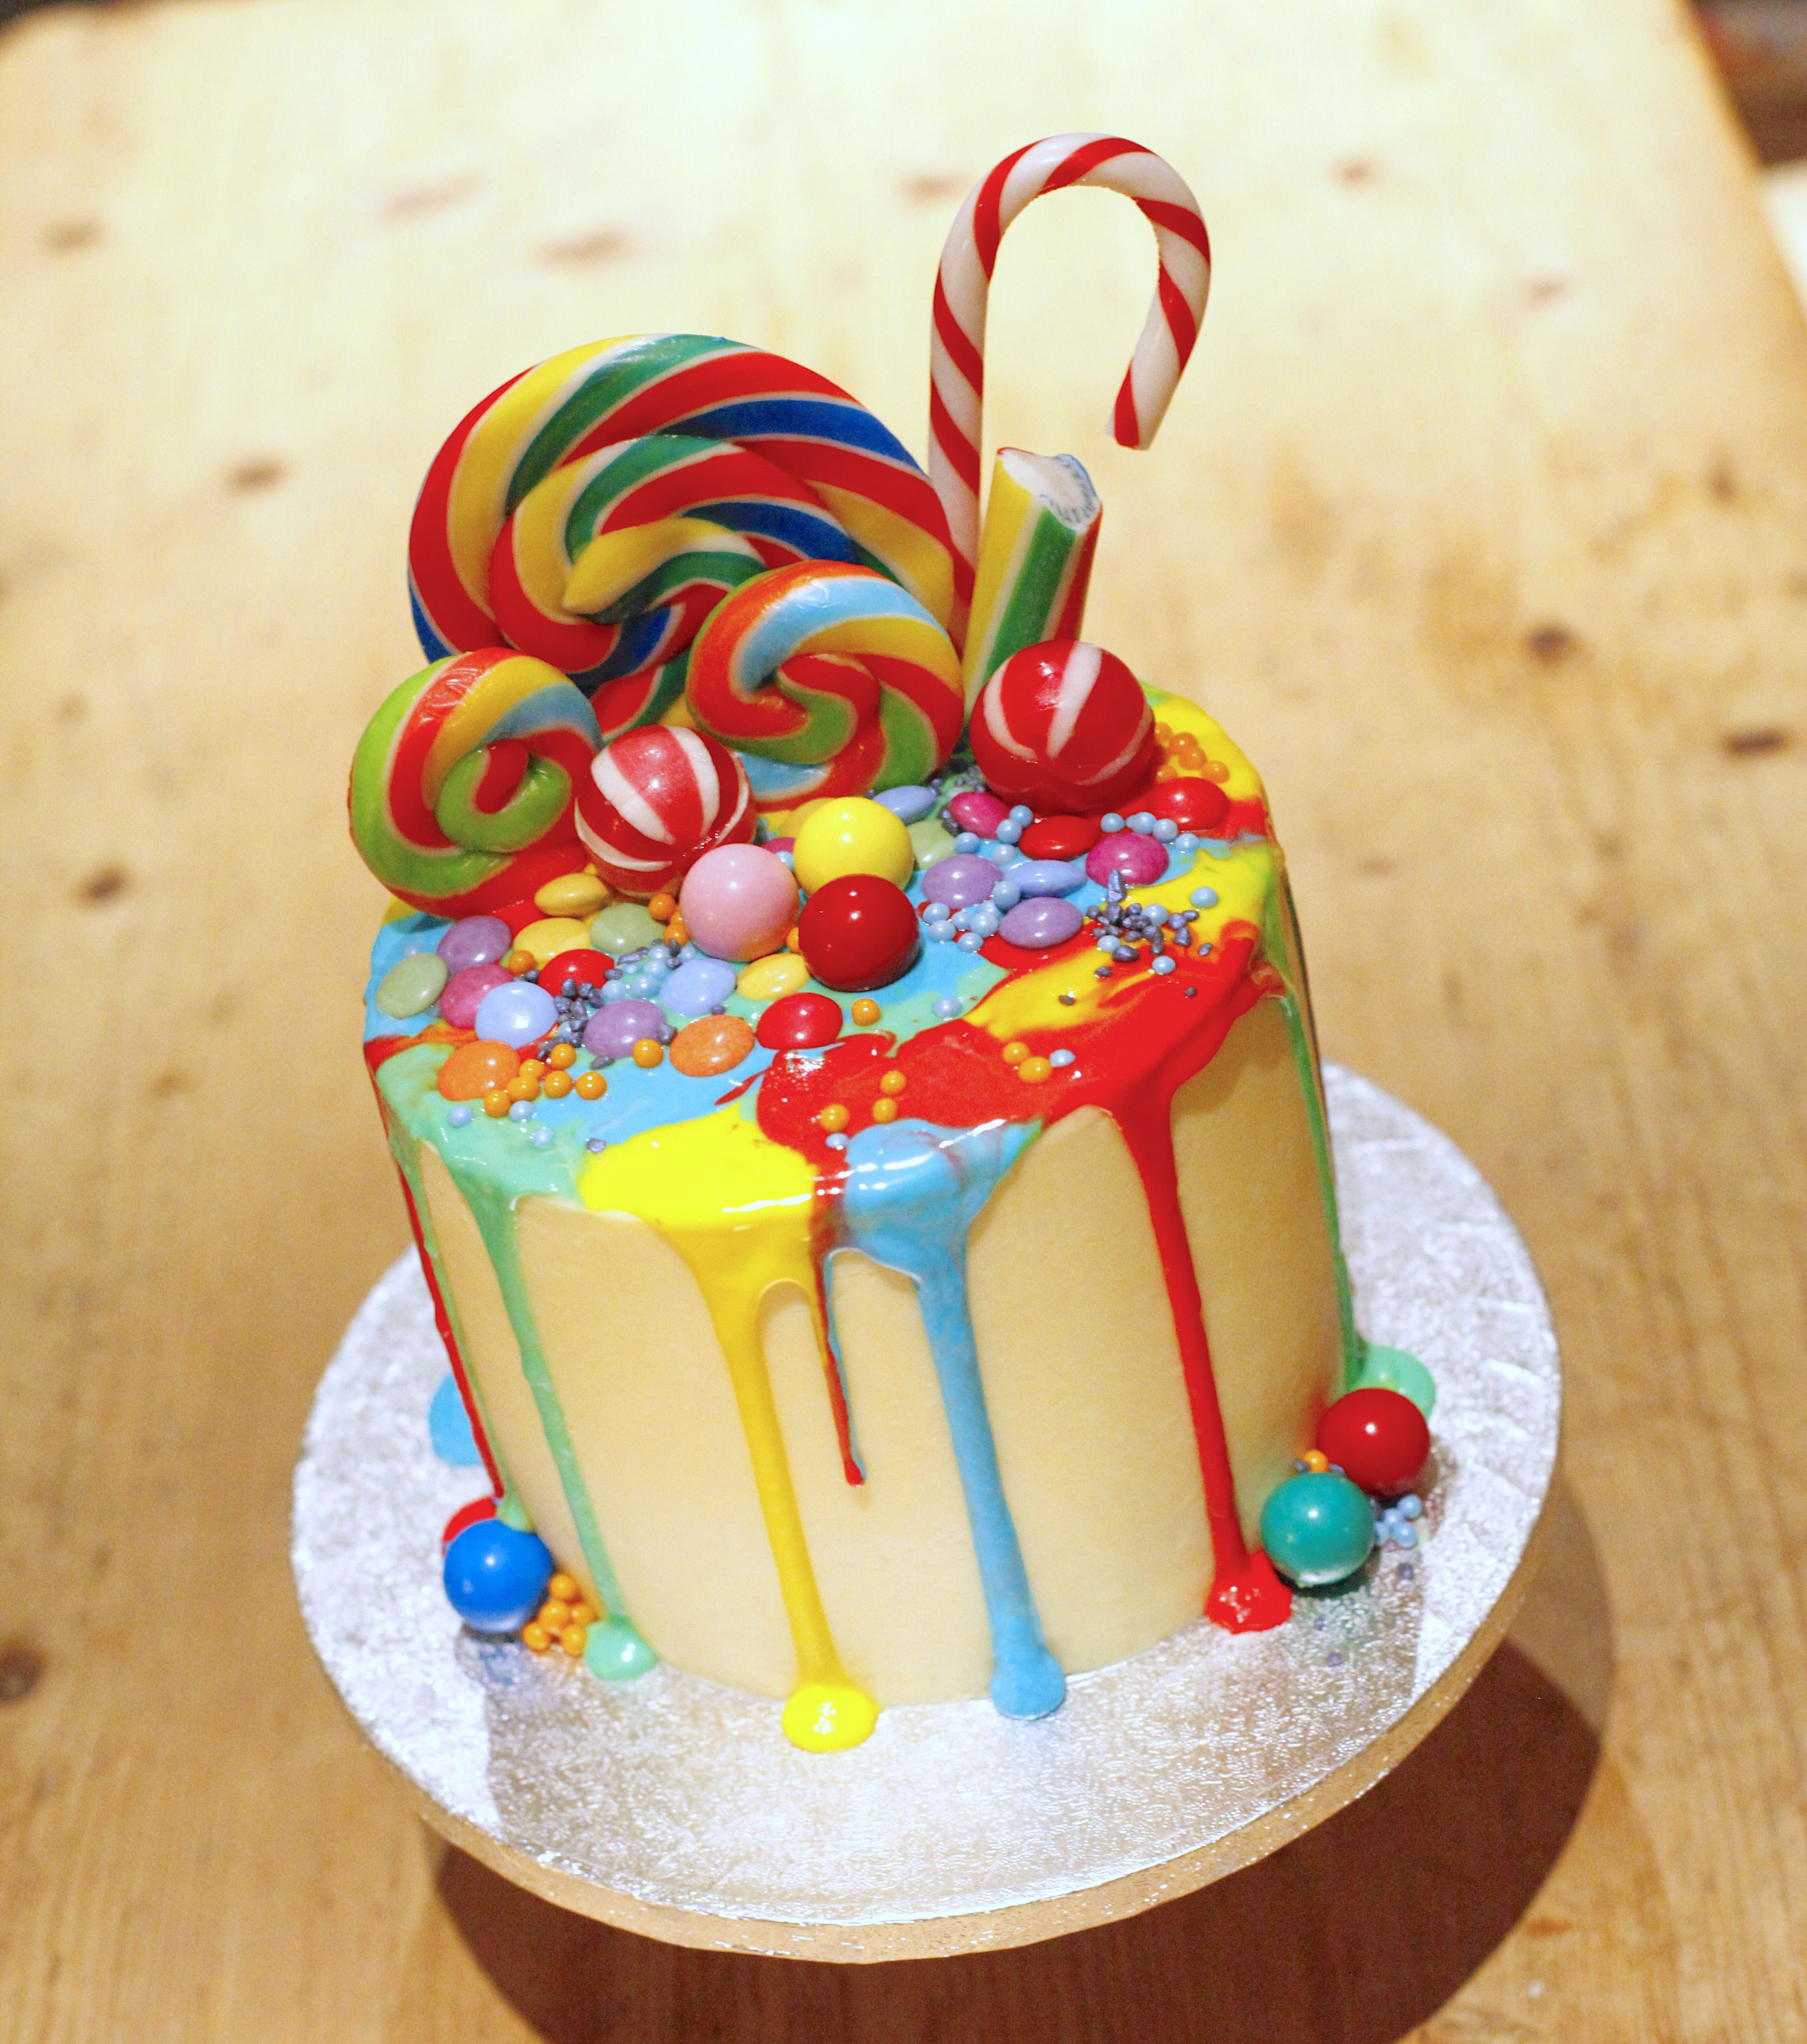 Excellent Rainbow Candy Pour Birthday Cake By Kasserina Cakes In West Sussex Birthday Cards Printable Opercafe Filternl